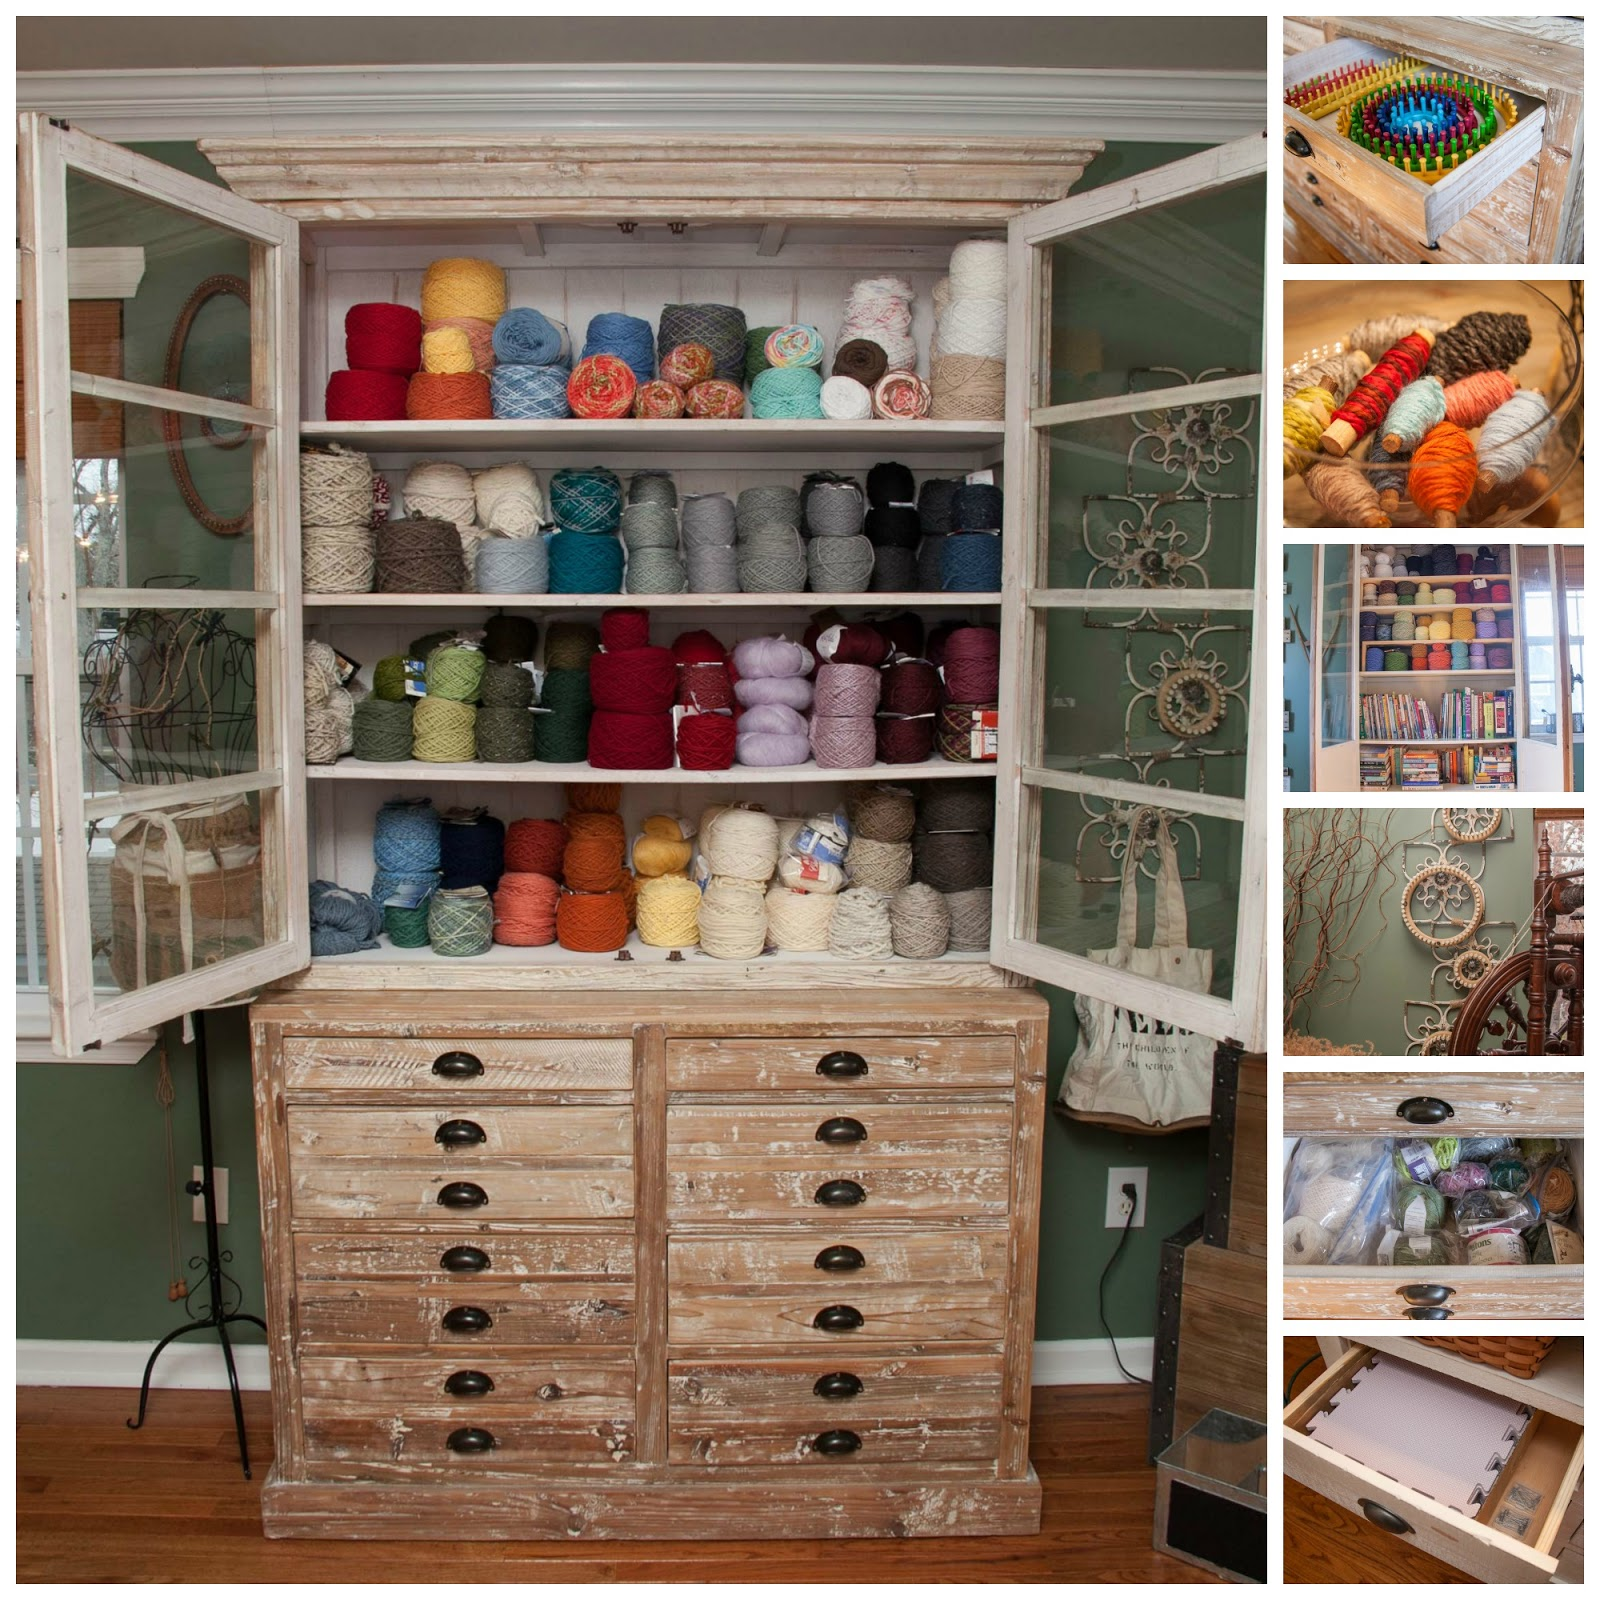 Loom Knitting By This Moment Is Good Fiber Arts Studio Tour